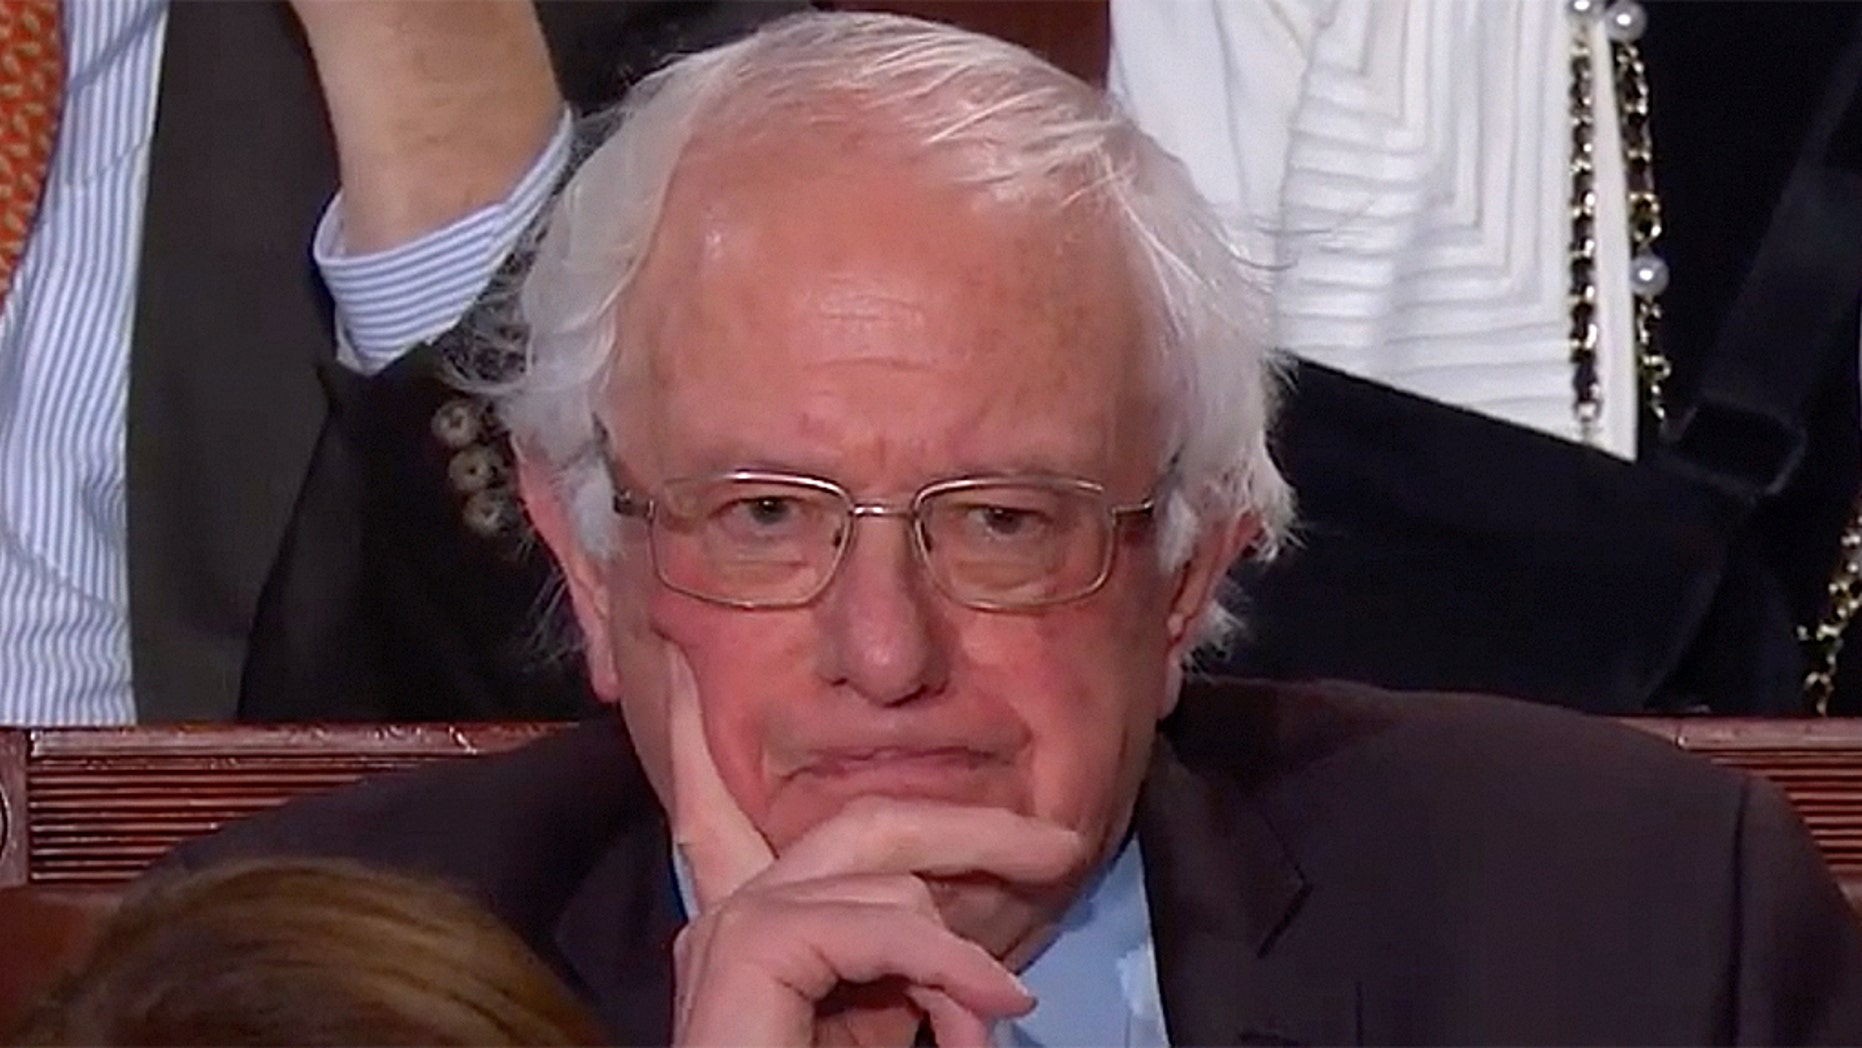 CNN's town hall event with 2020 presidential hopeful Bernie Sanders reportedly featured questions from Democratic operatives.